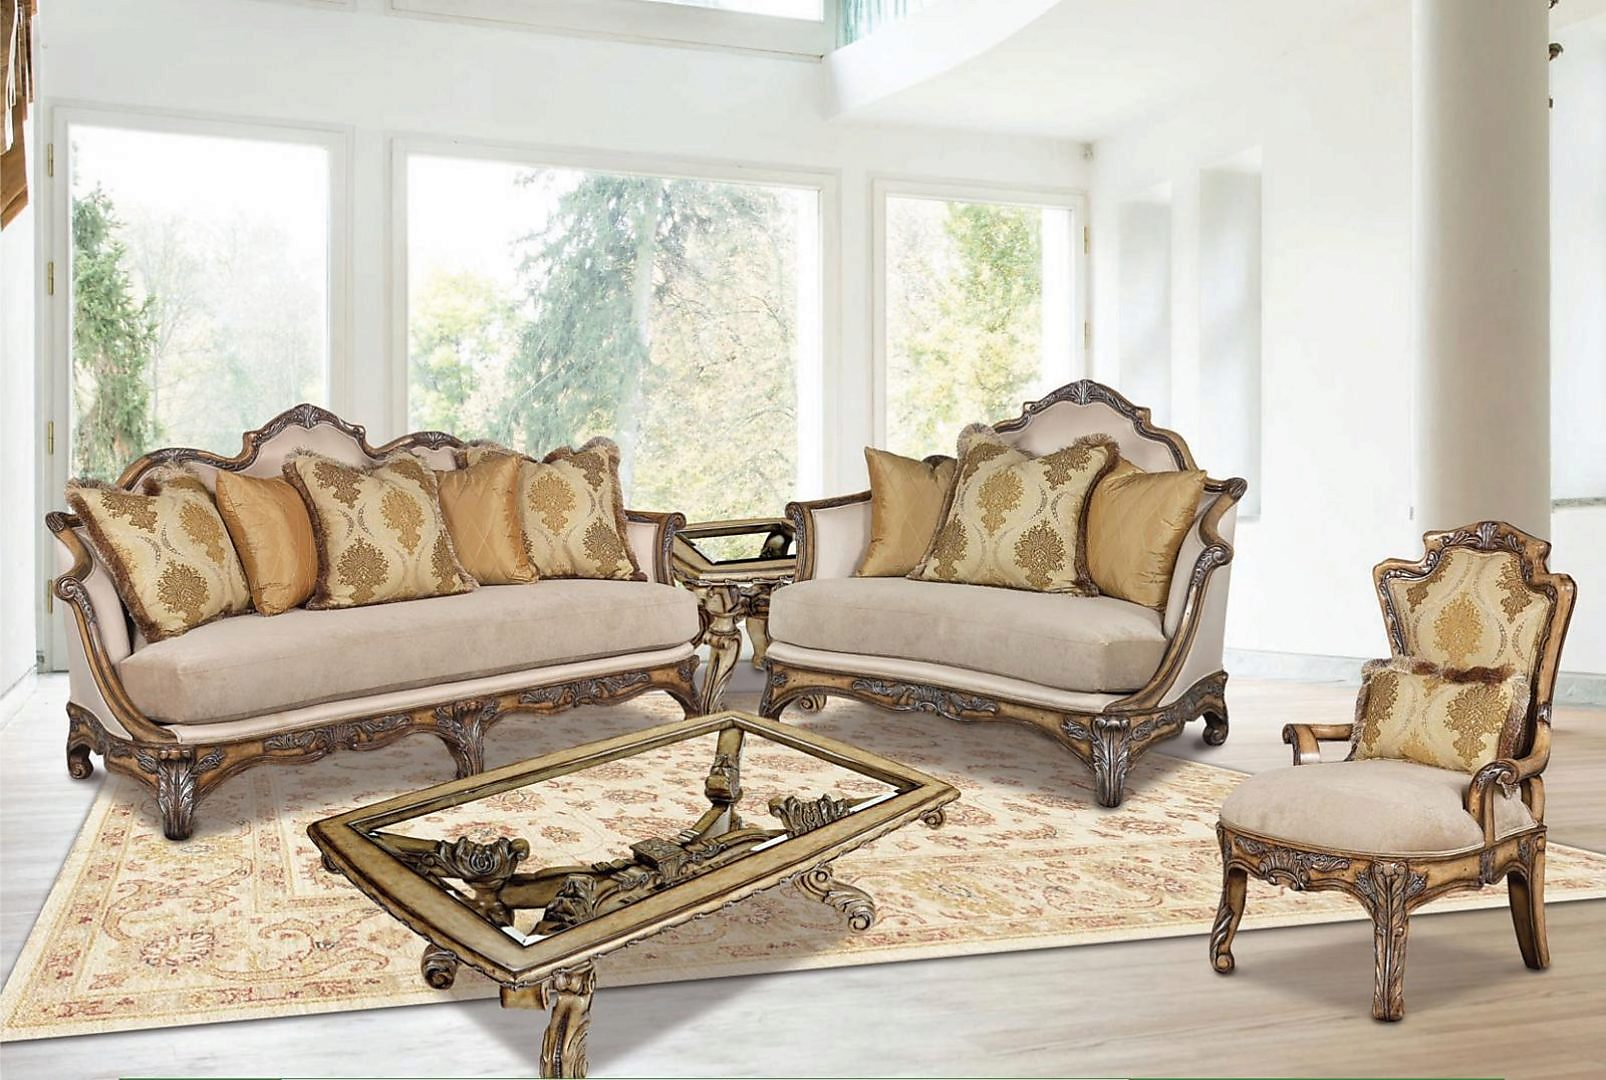 Bennetti Luxury Pecan Silk Chenille Walnut Sofa Set 3Pcs Vivacci Sofa Chair &1/2 Accent Chair  Classic Traditional